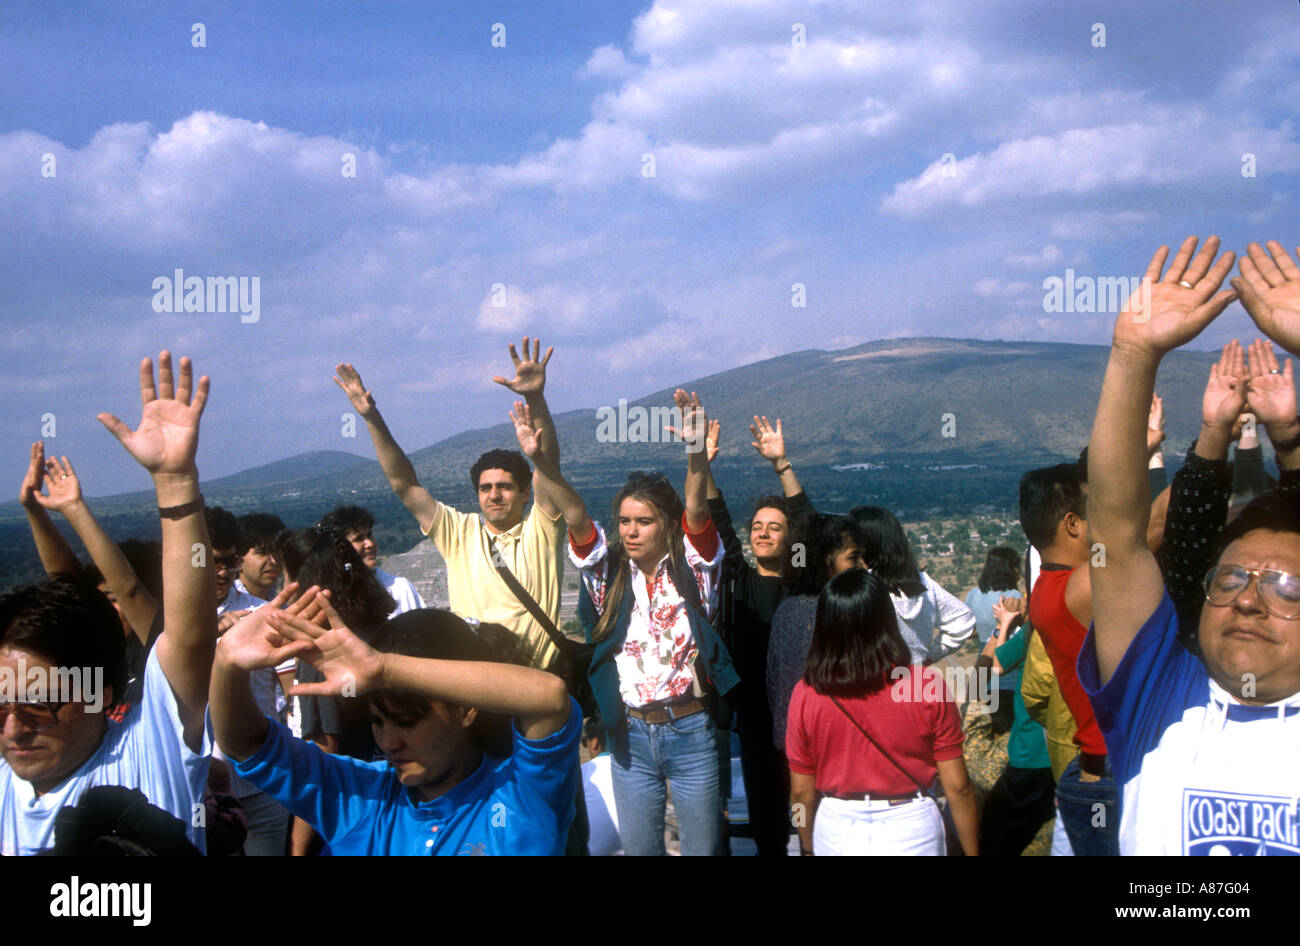 People receiving energy with their arms up on first January on the top of the Pyramid of the sun, Mexico Stock Photo